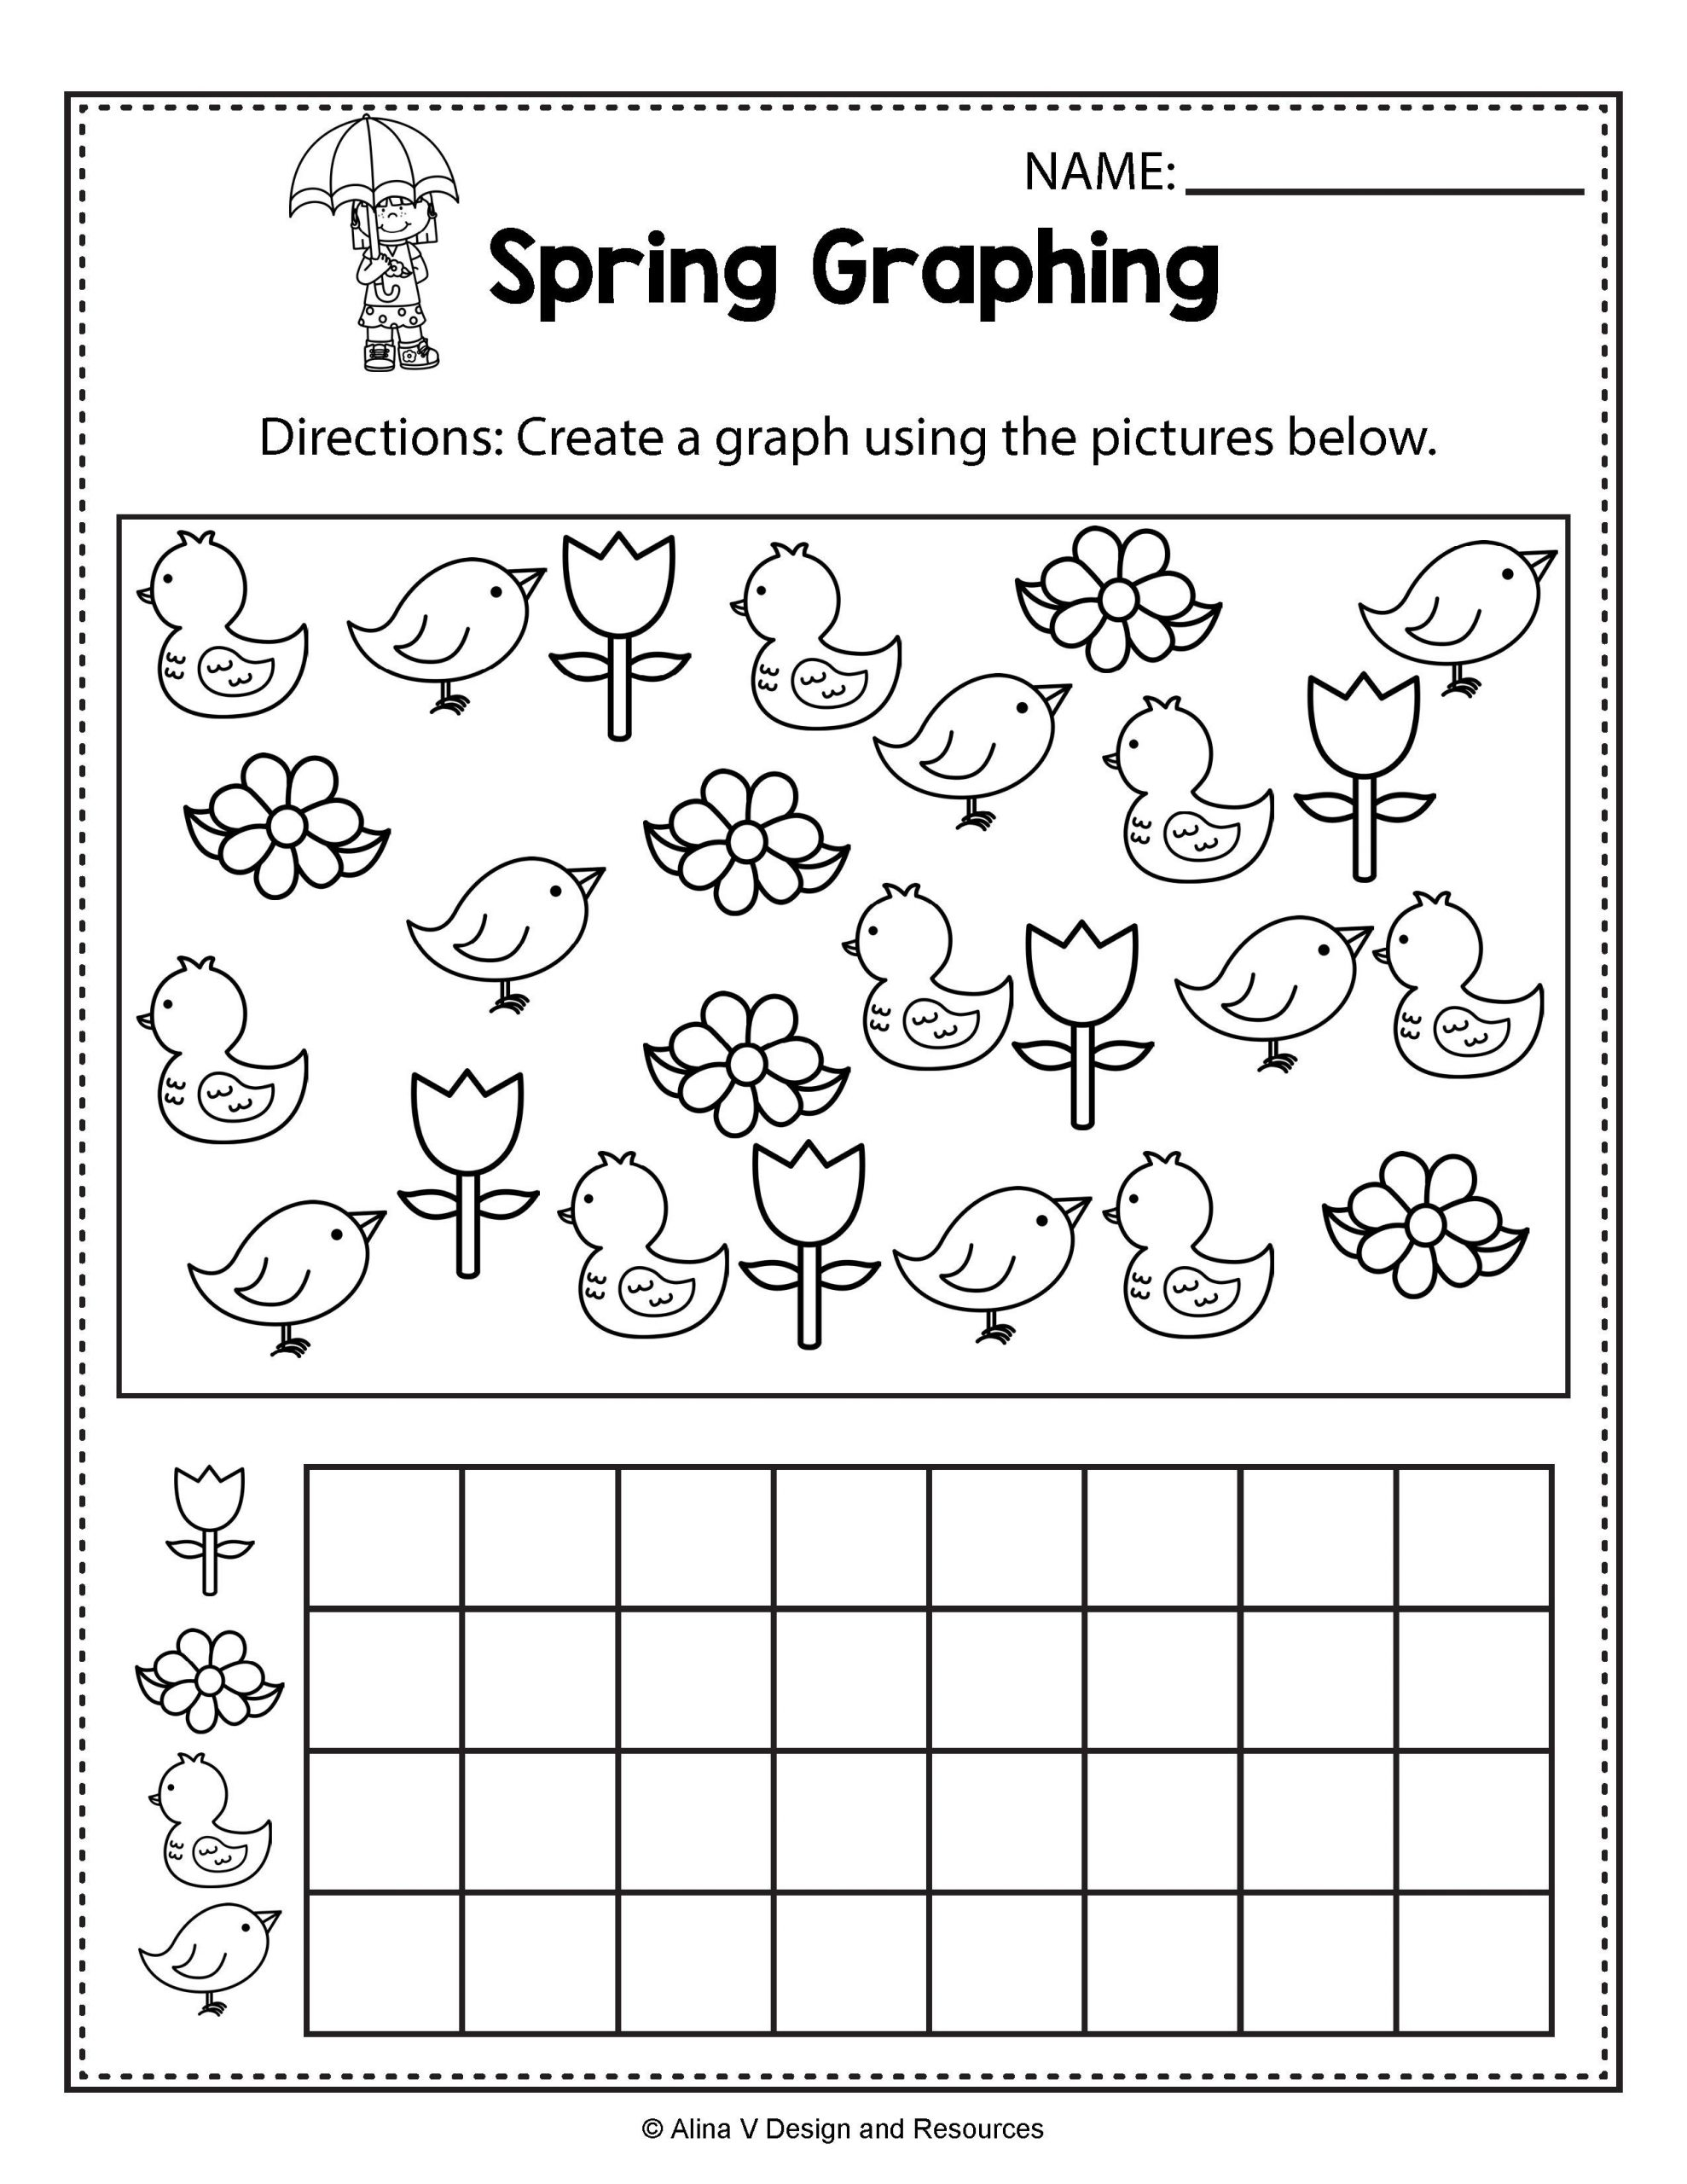 Spring Worksheets for 1st Grade Spring Graphing Spring Math Worksheets and Activities for